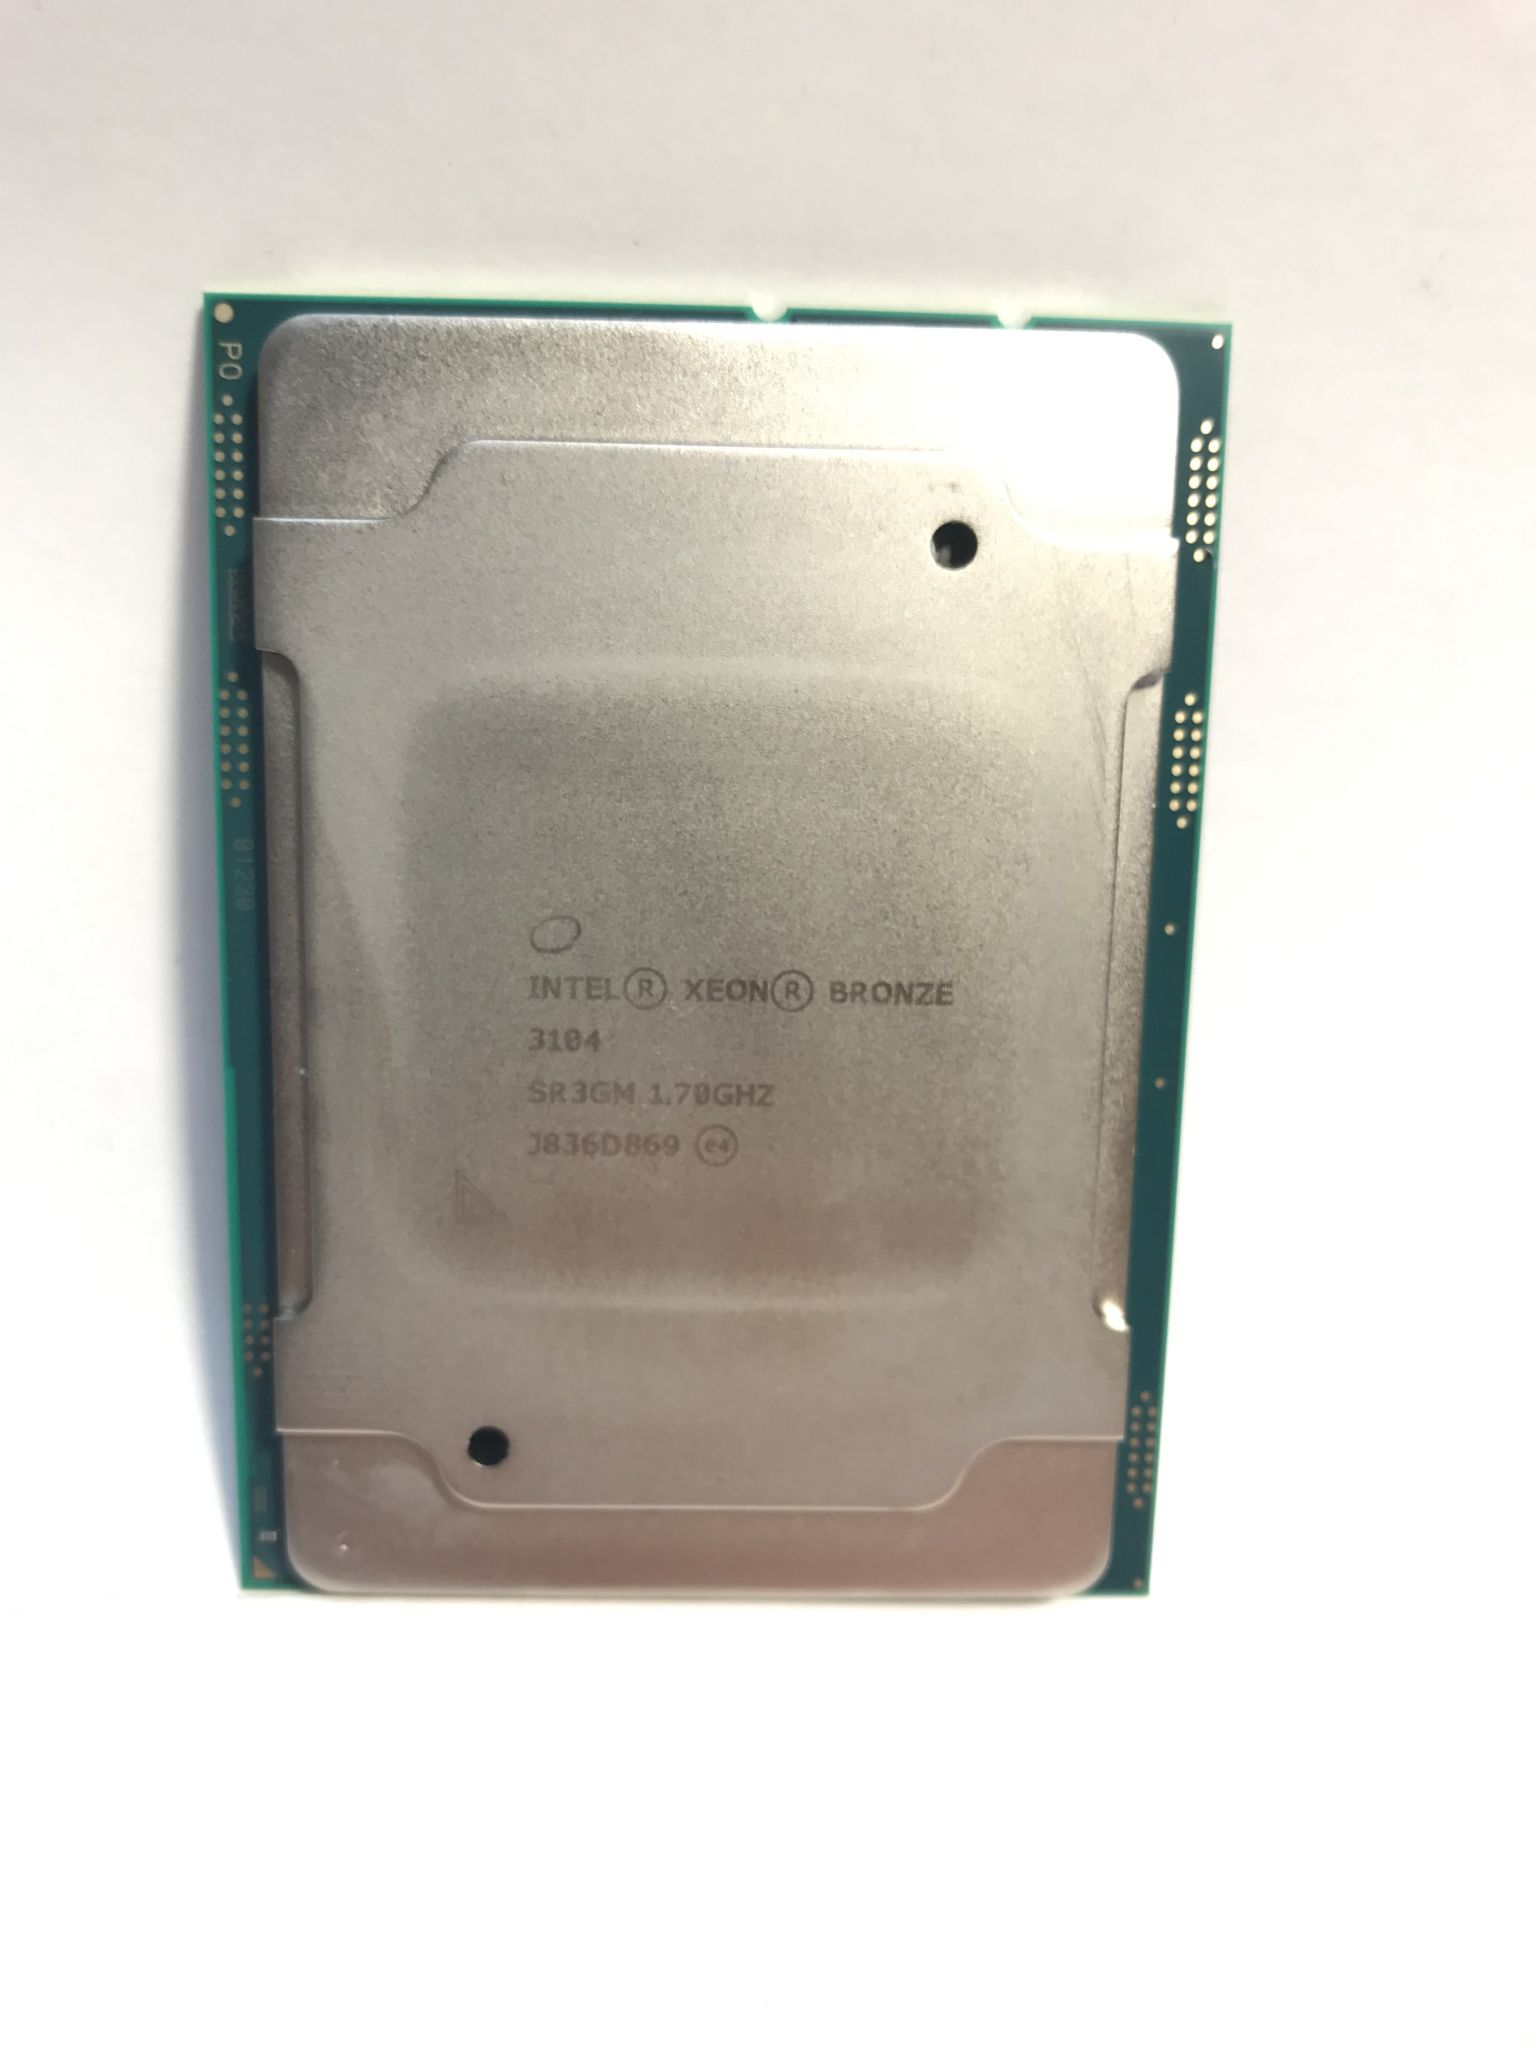 Процессор Intel Xeon Bronze 3104 1.7Ghz